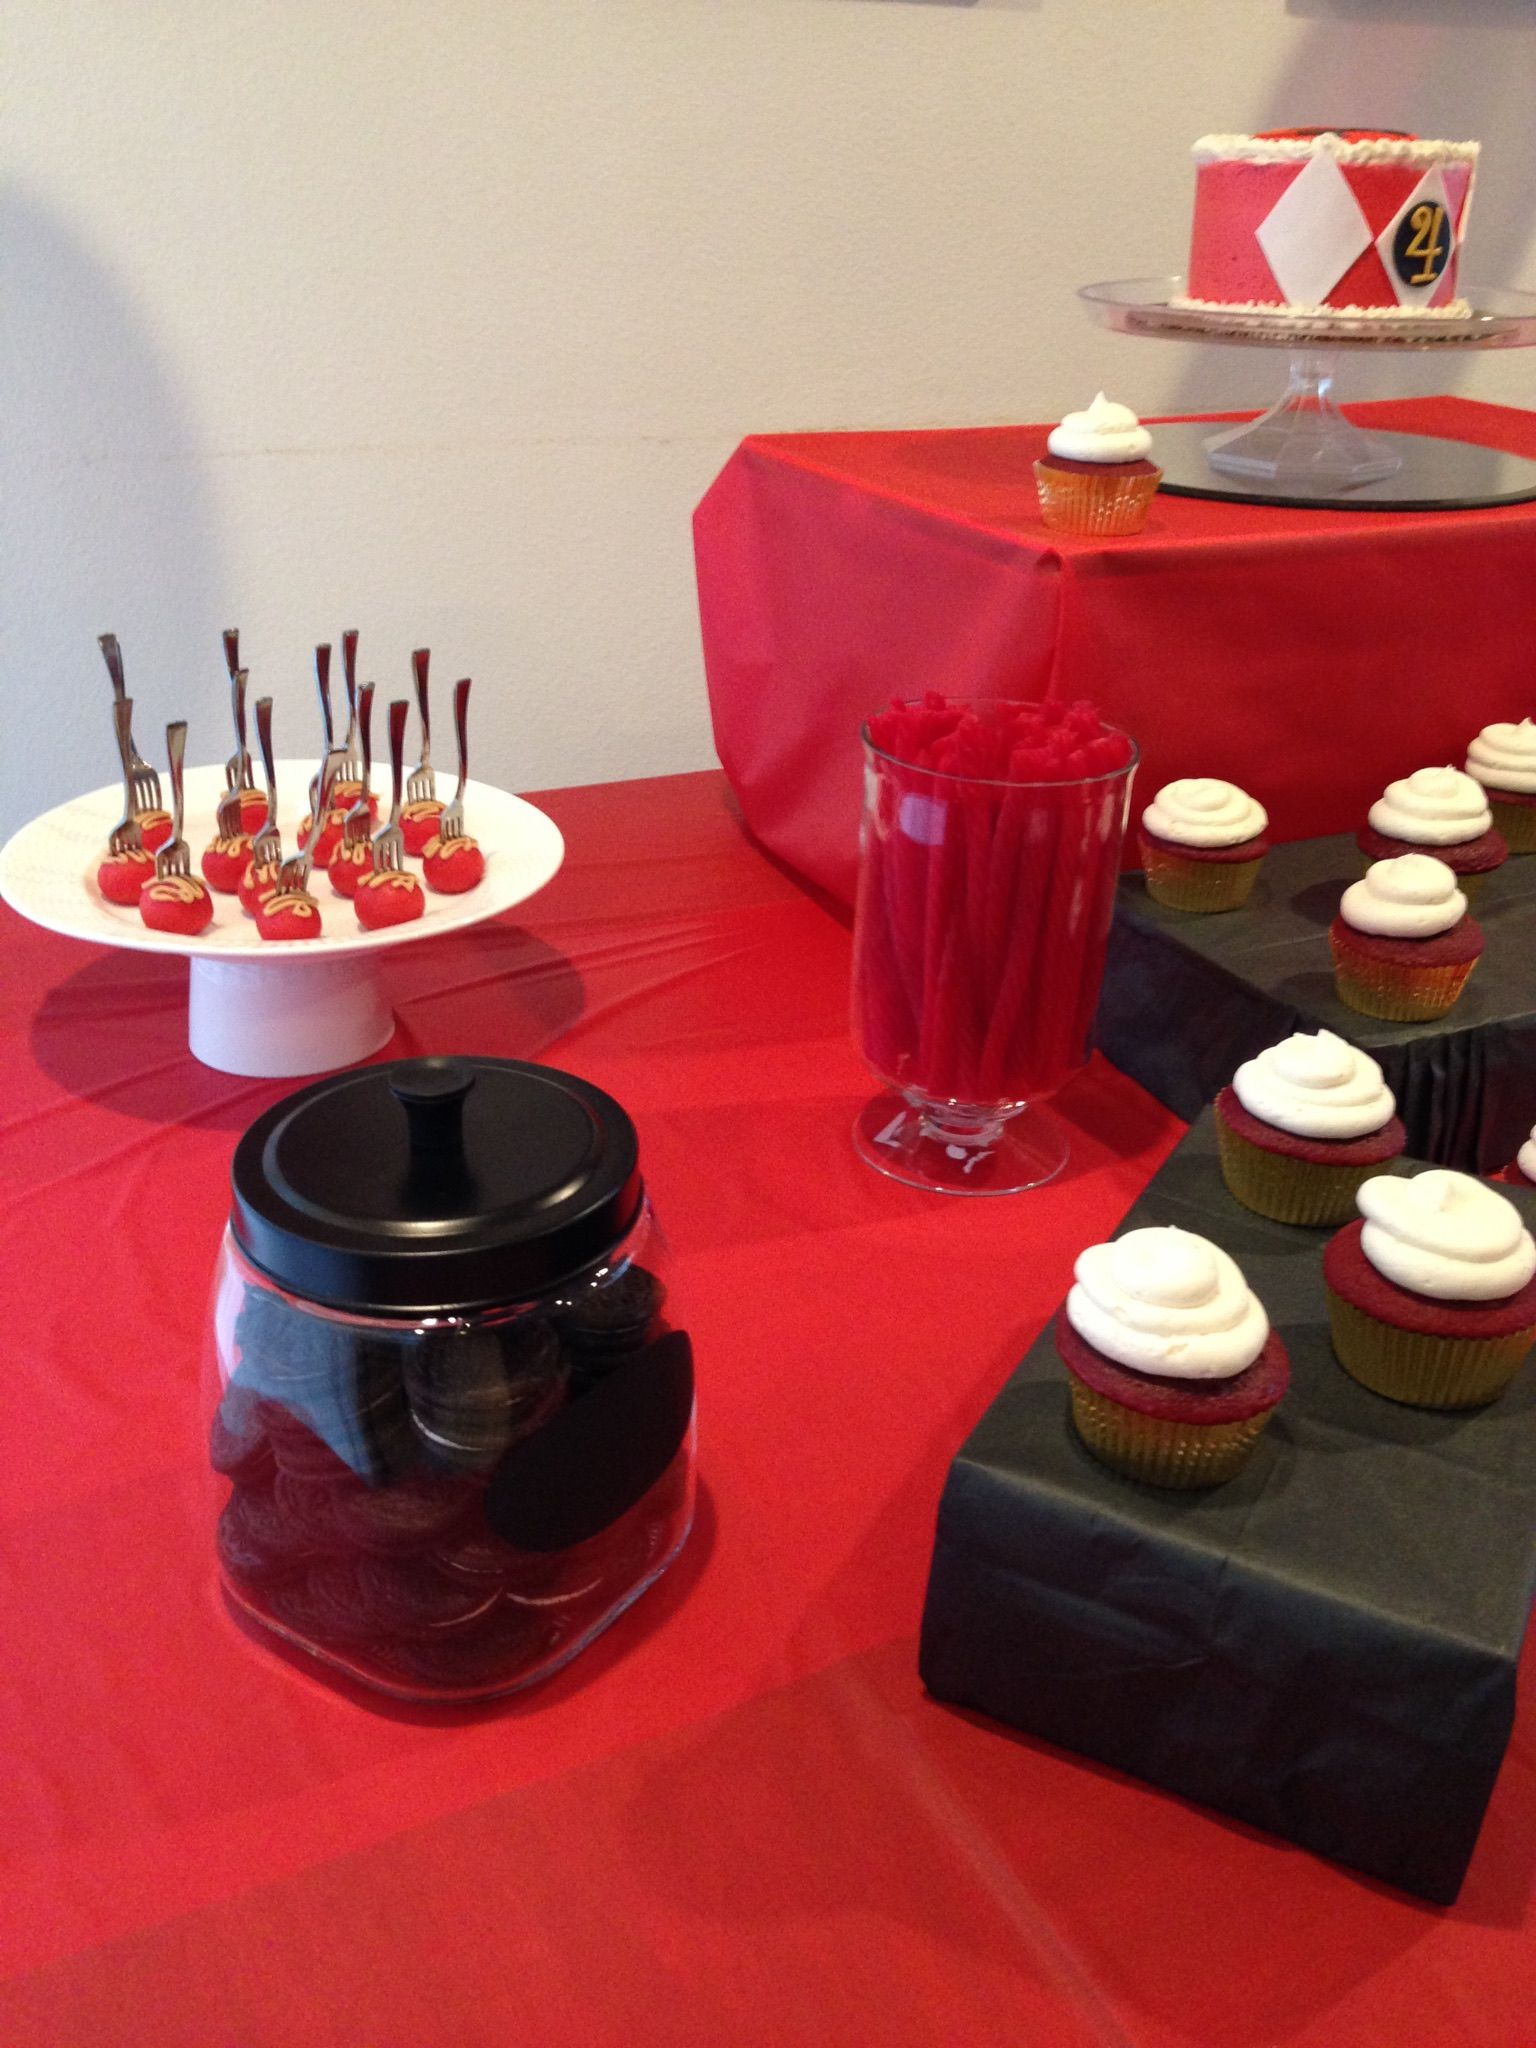 Oreo cookies and red vines as dessert table accents for a red and black color scheme.